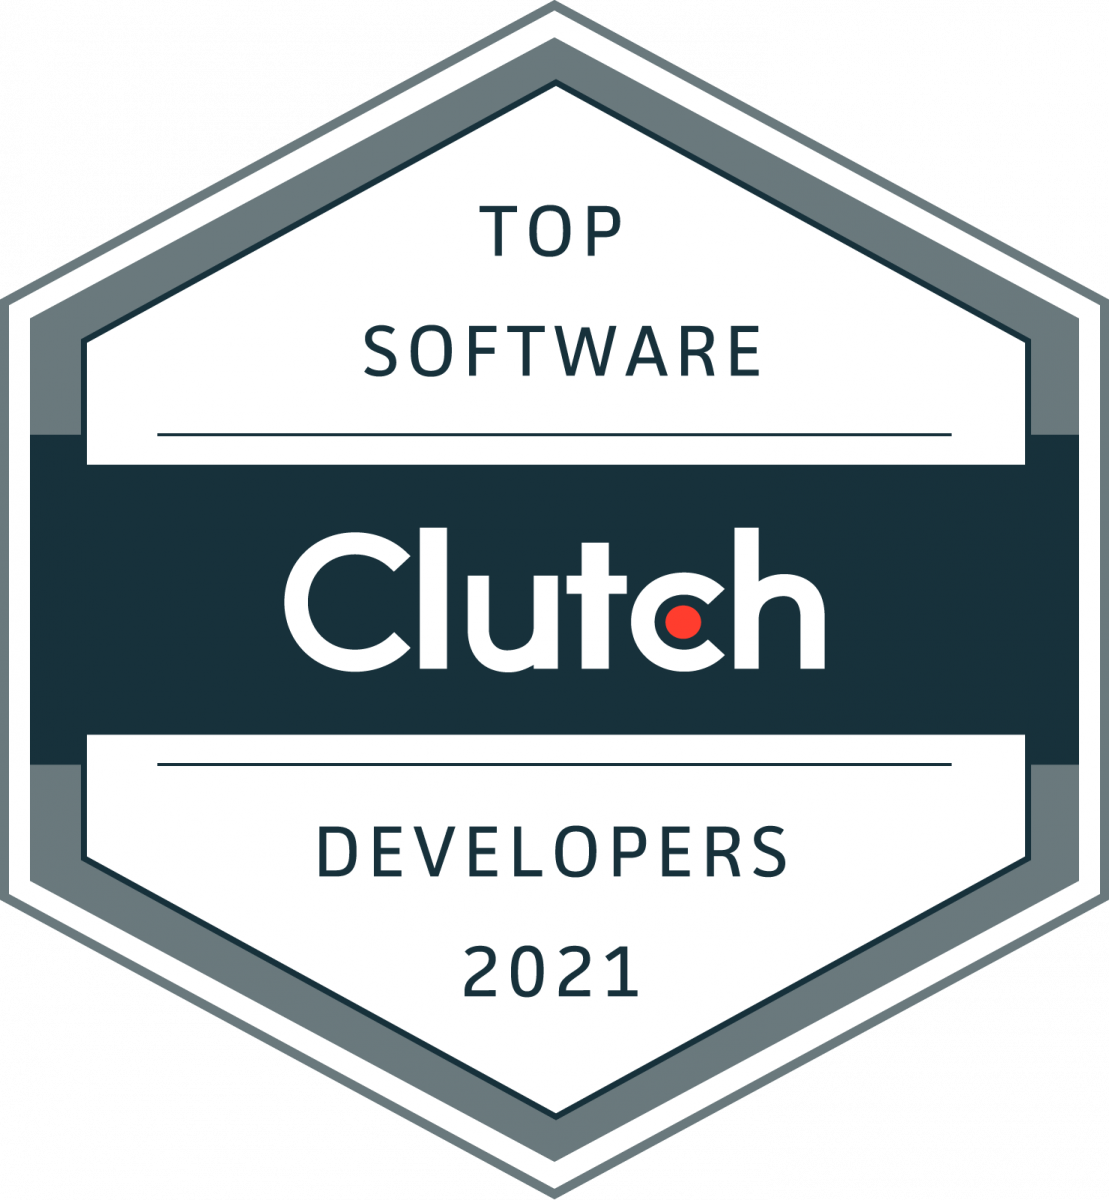 Top Software Developers 2021